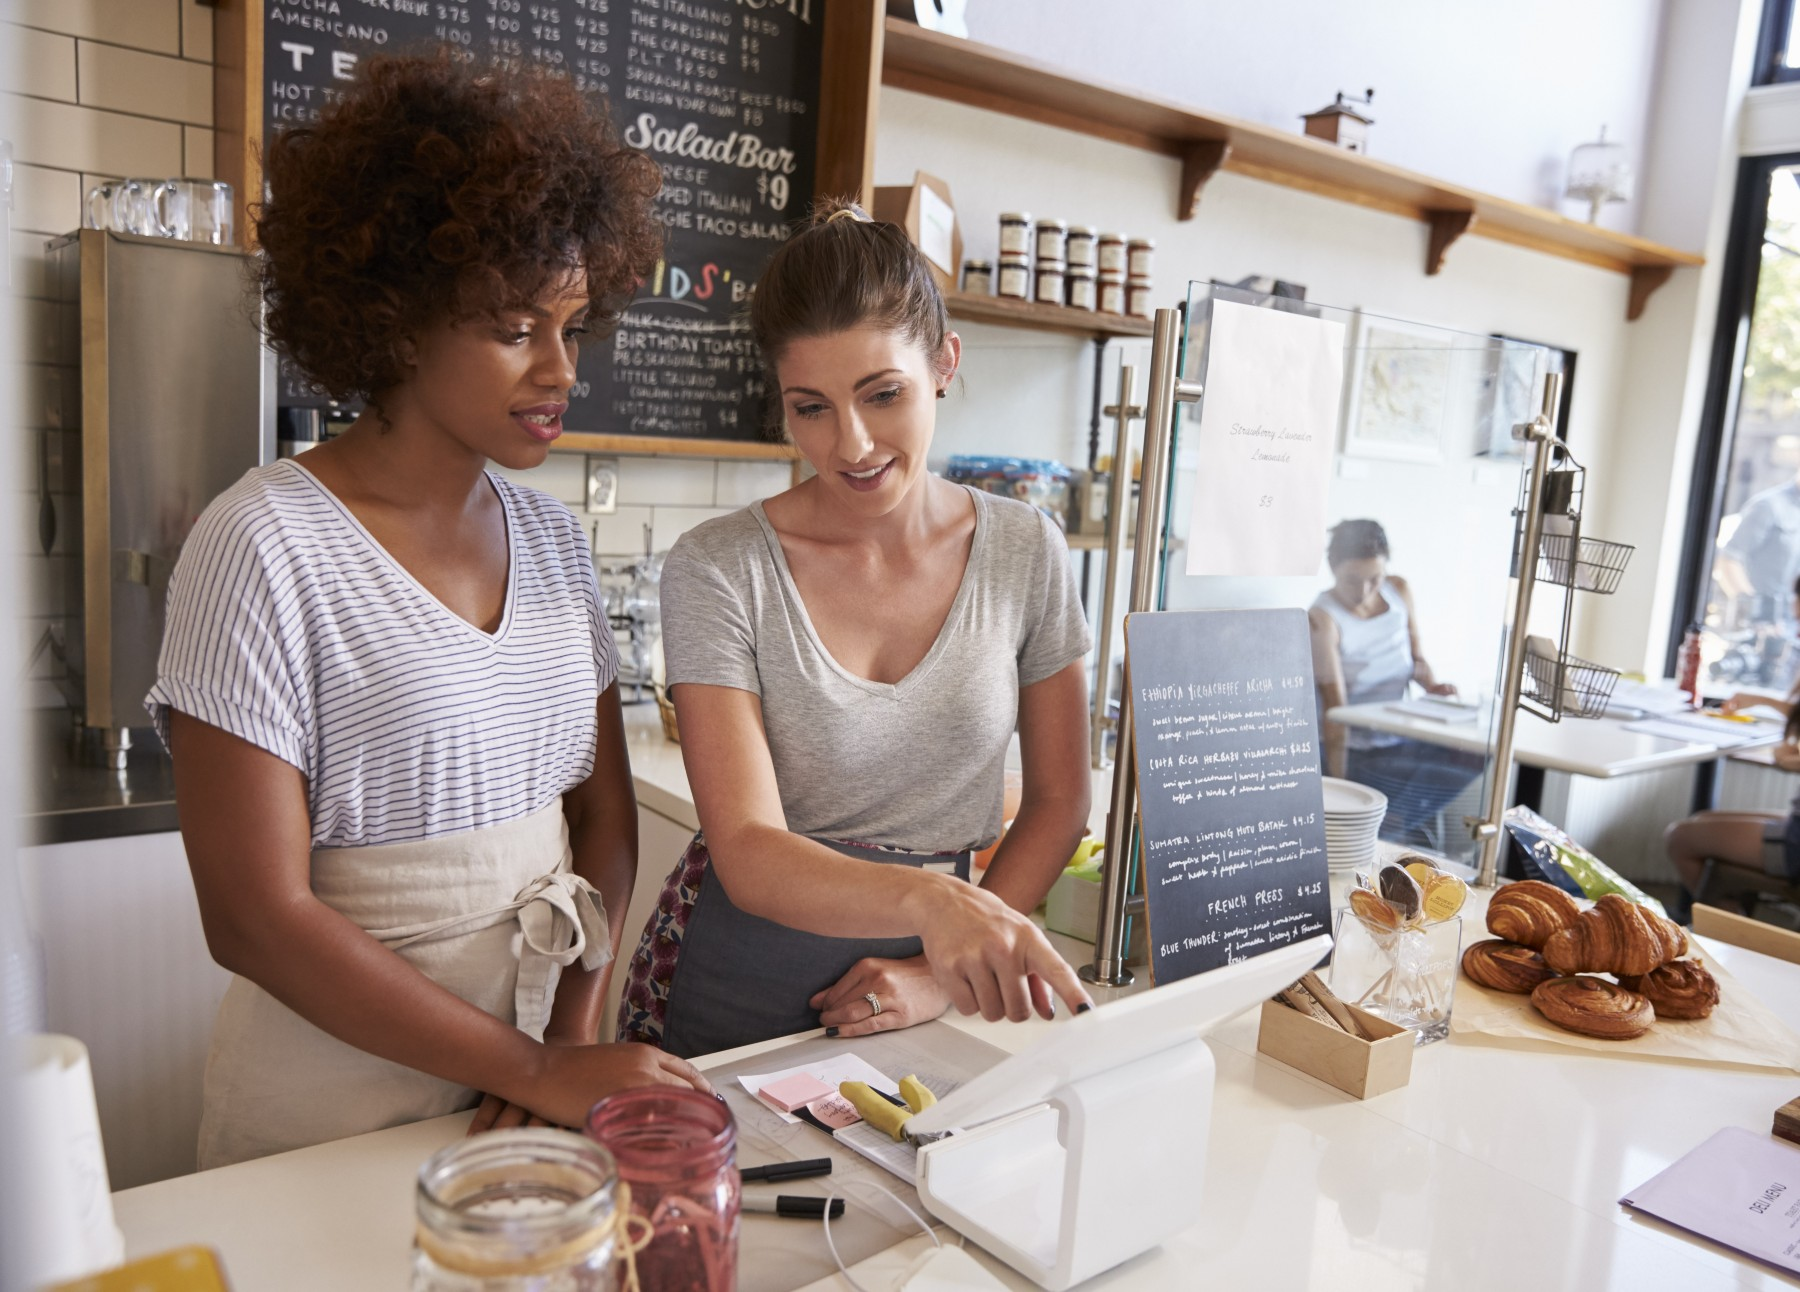 Spain job training, woman explaining cafe work to another woman